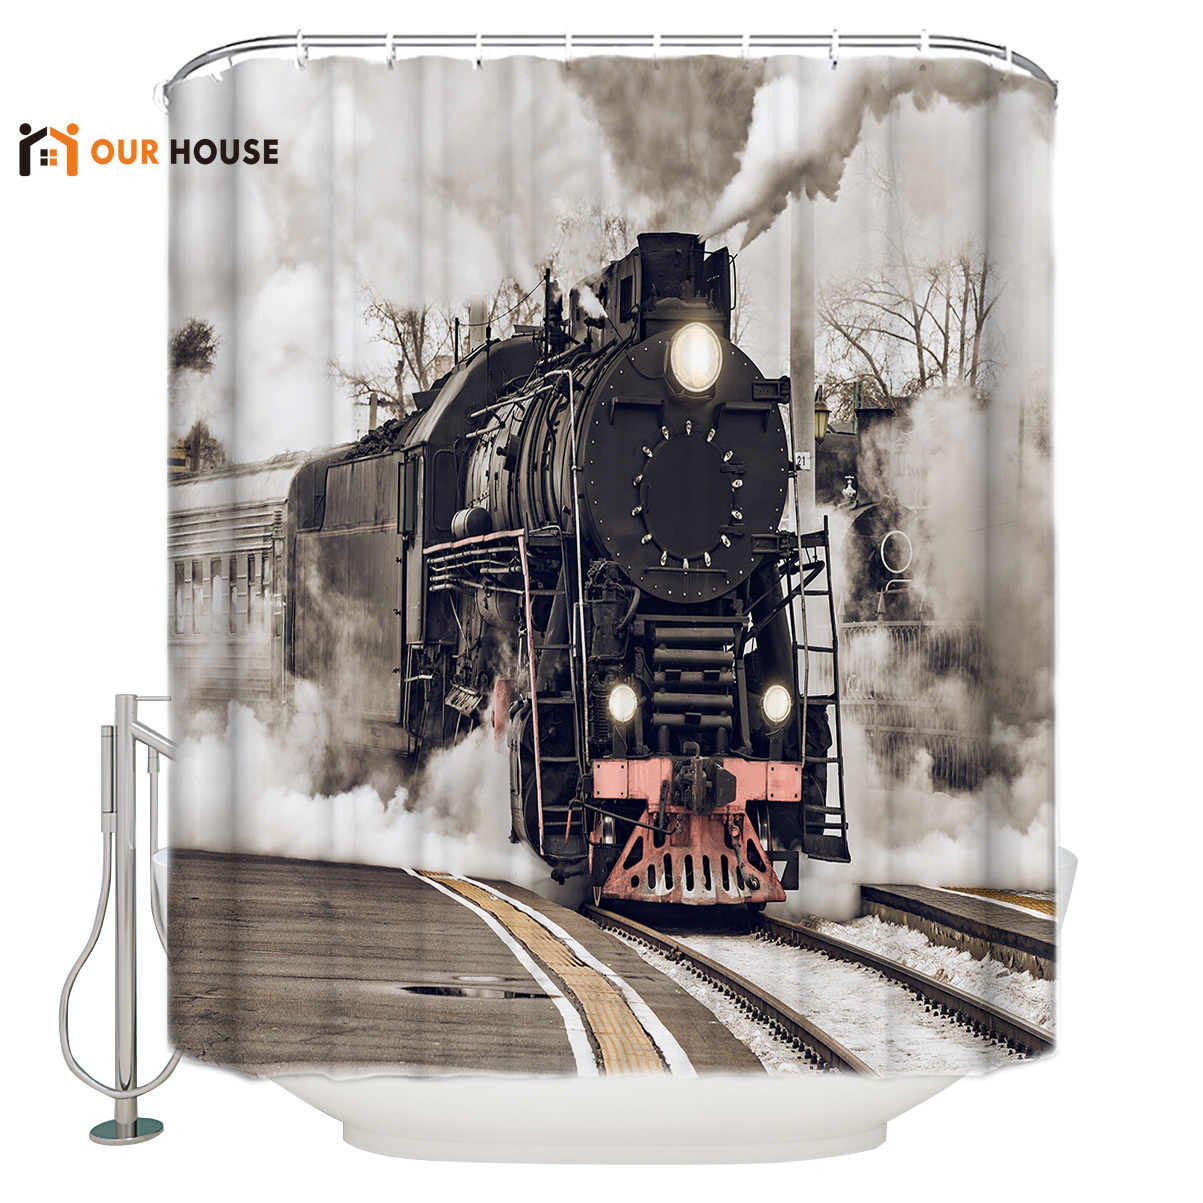 Shower Curtains For Mens Bathroom.Ourhouse The Steam Age Of Old Trains Shower Curtain Bathroom Bathroom Sets Childrens Unique Hotel Cloth Hooks Girls Mens Cool